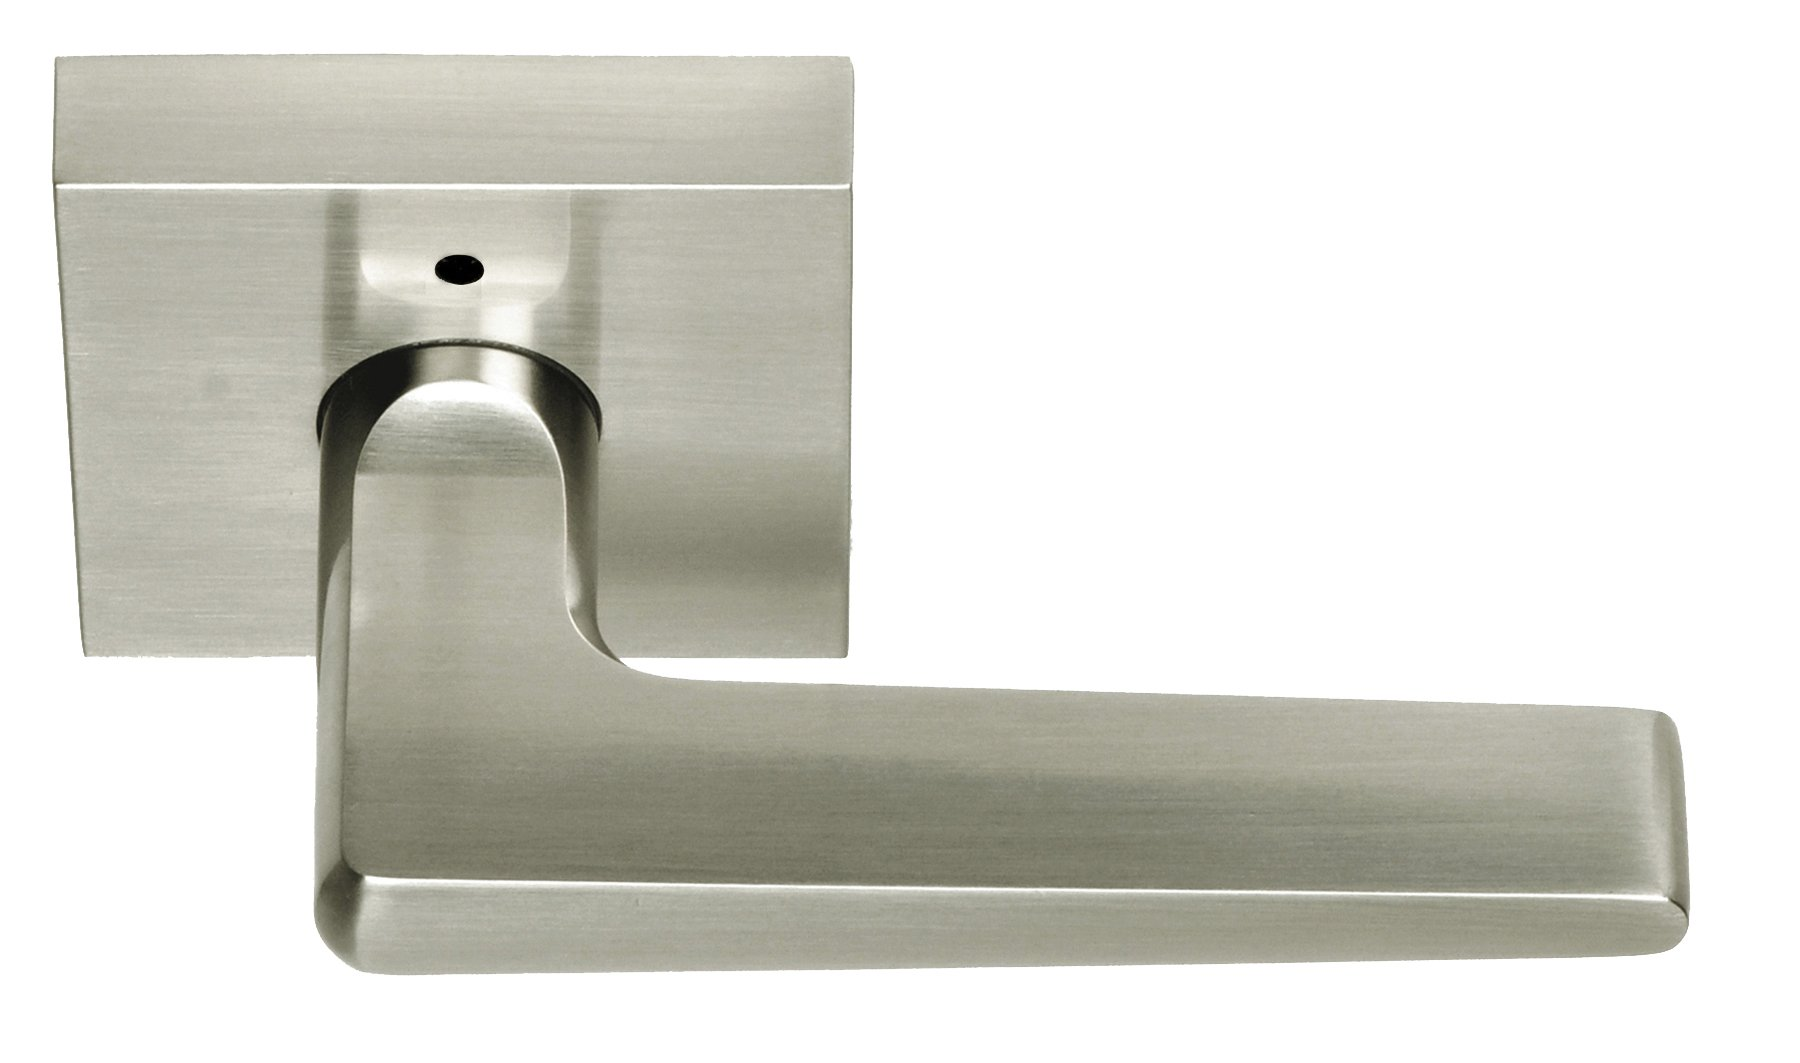 Better Home Products Tiburon Privacy Left Hand Lever, Satin Nickel